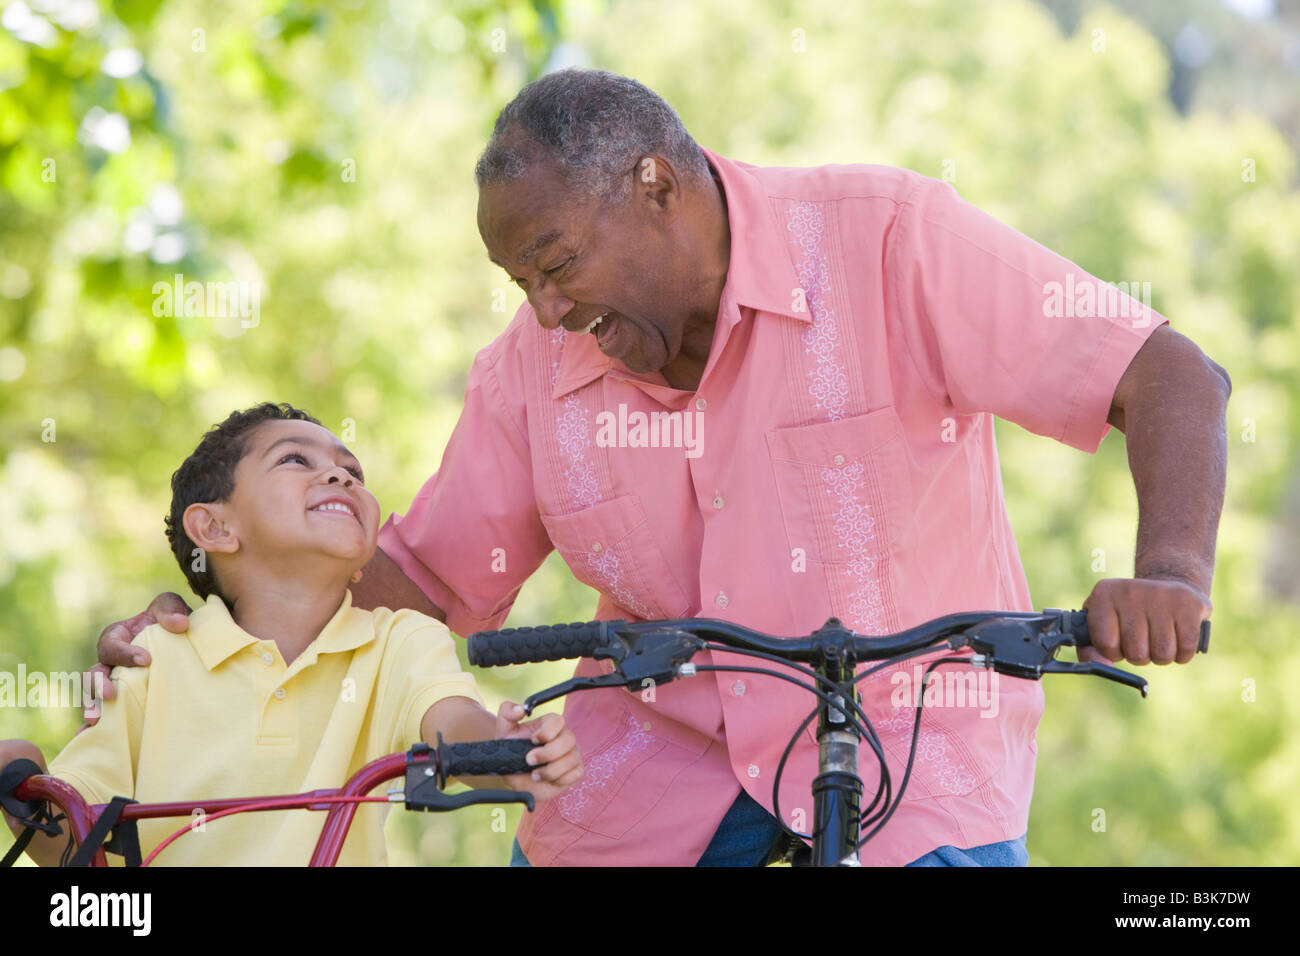 Grand-père et petit-fils on bikes outdoors smiling Photo Stock